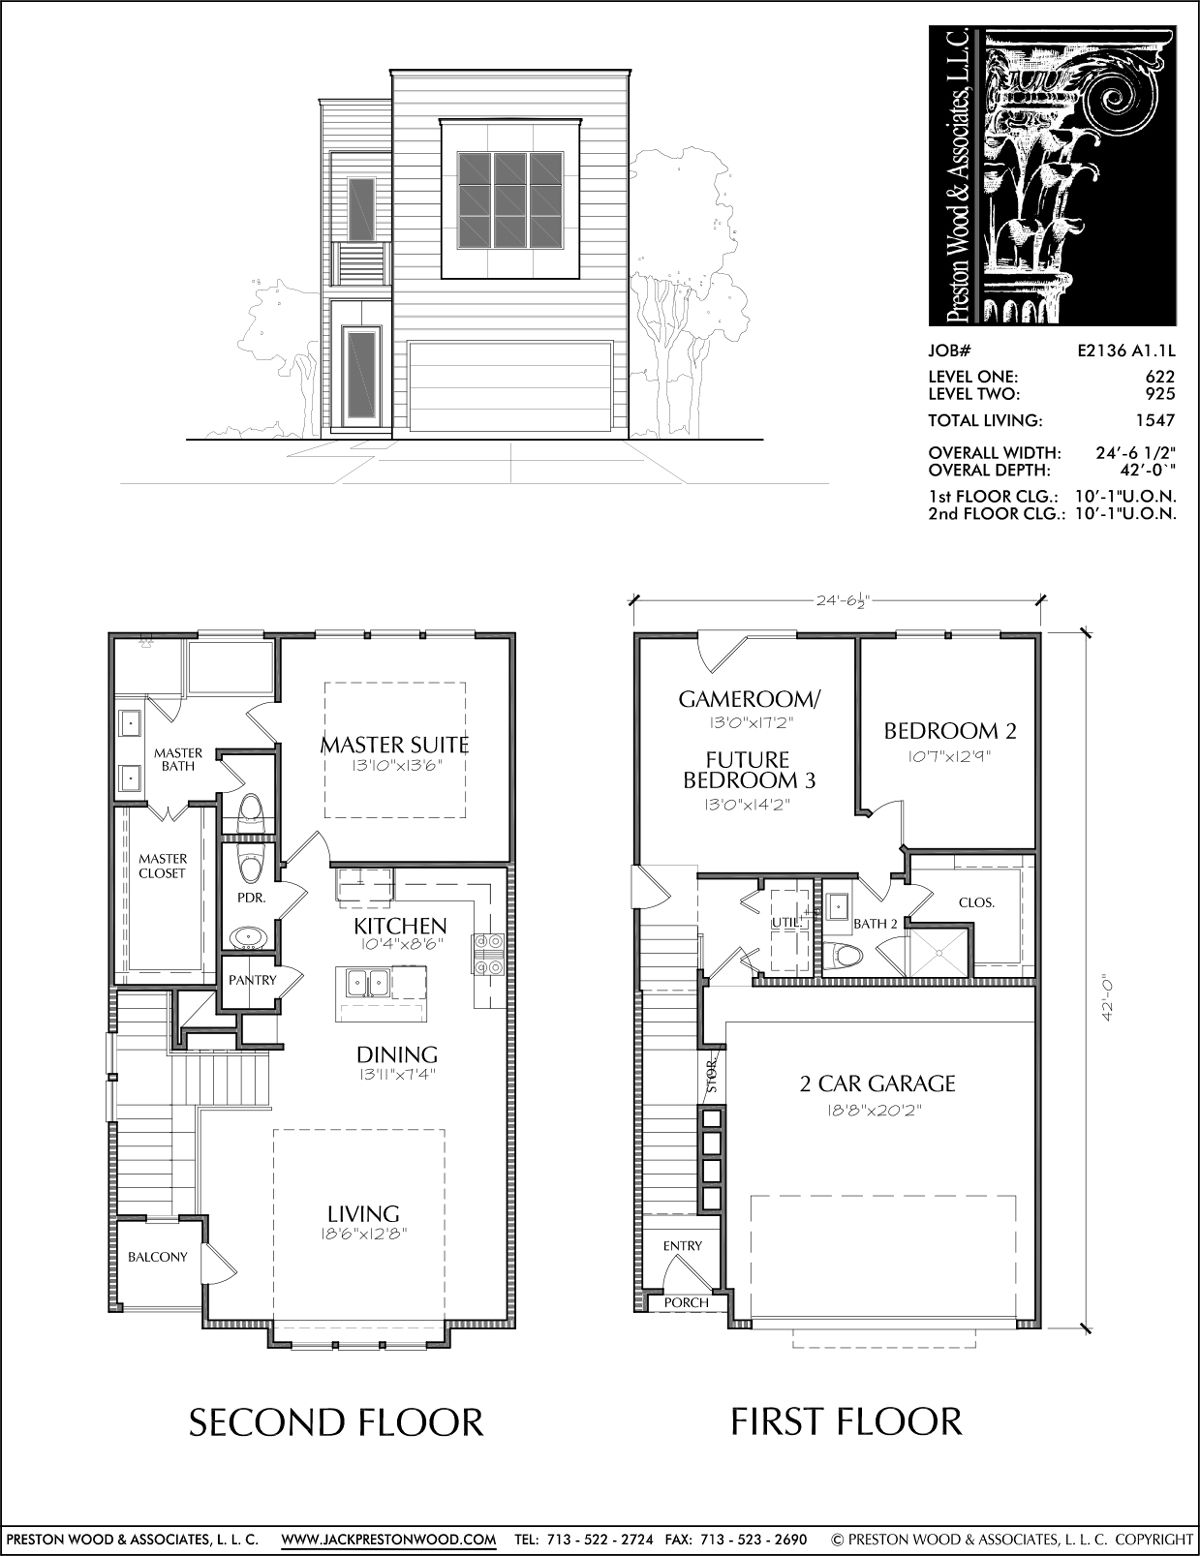 Townhome Plan E2136 A1 1 House Floor Plans Apartment Floor Plans Town House Floor Plan